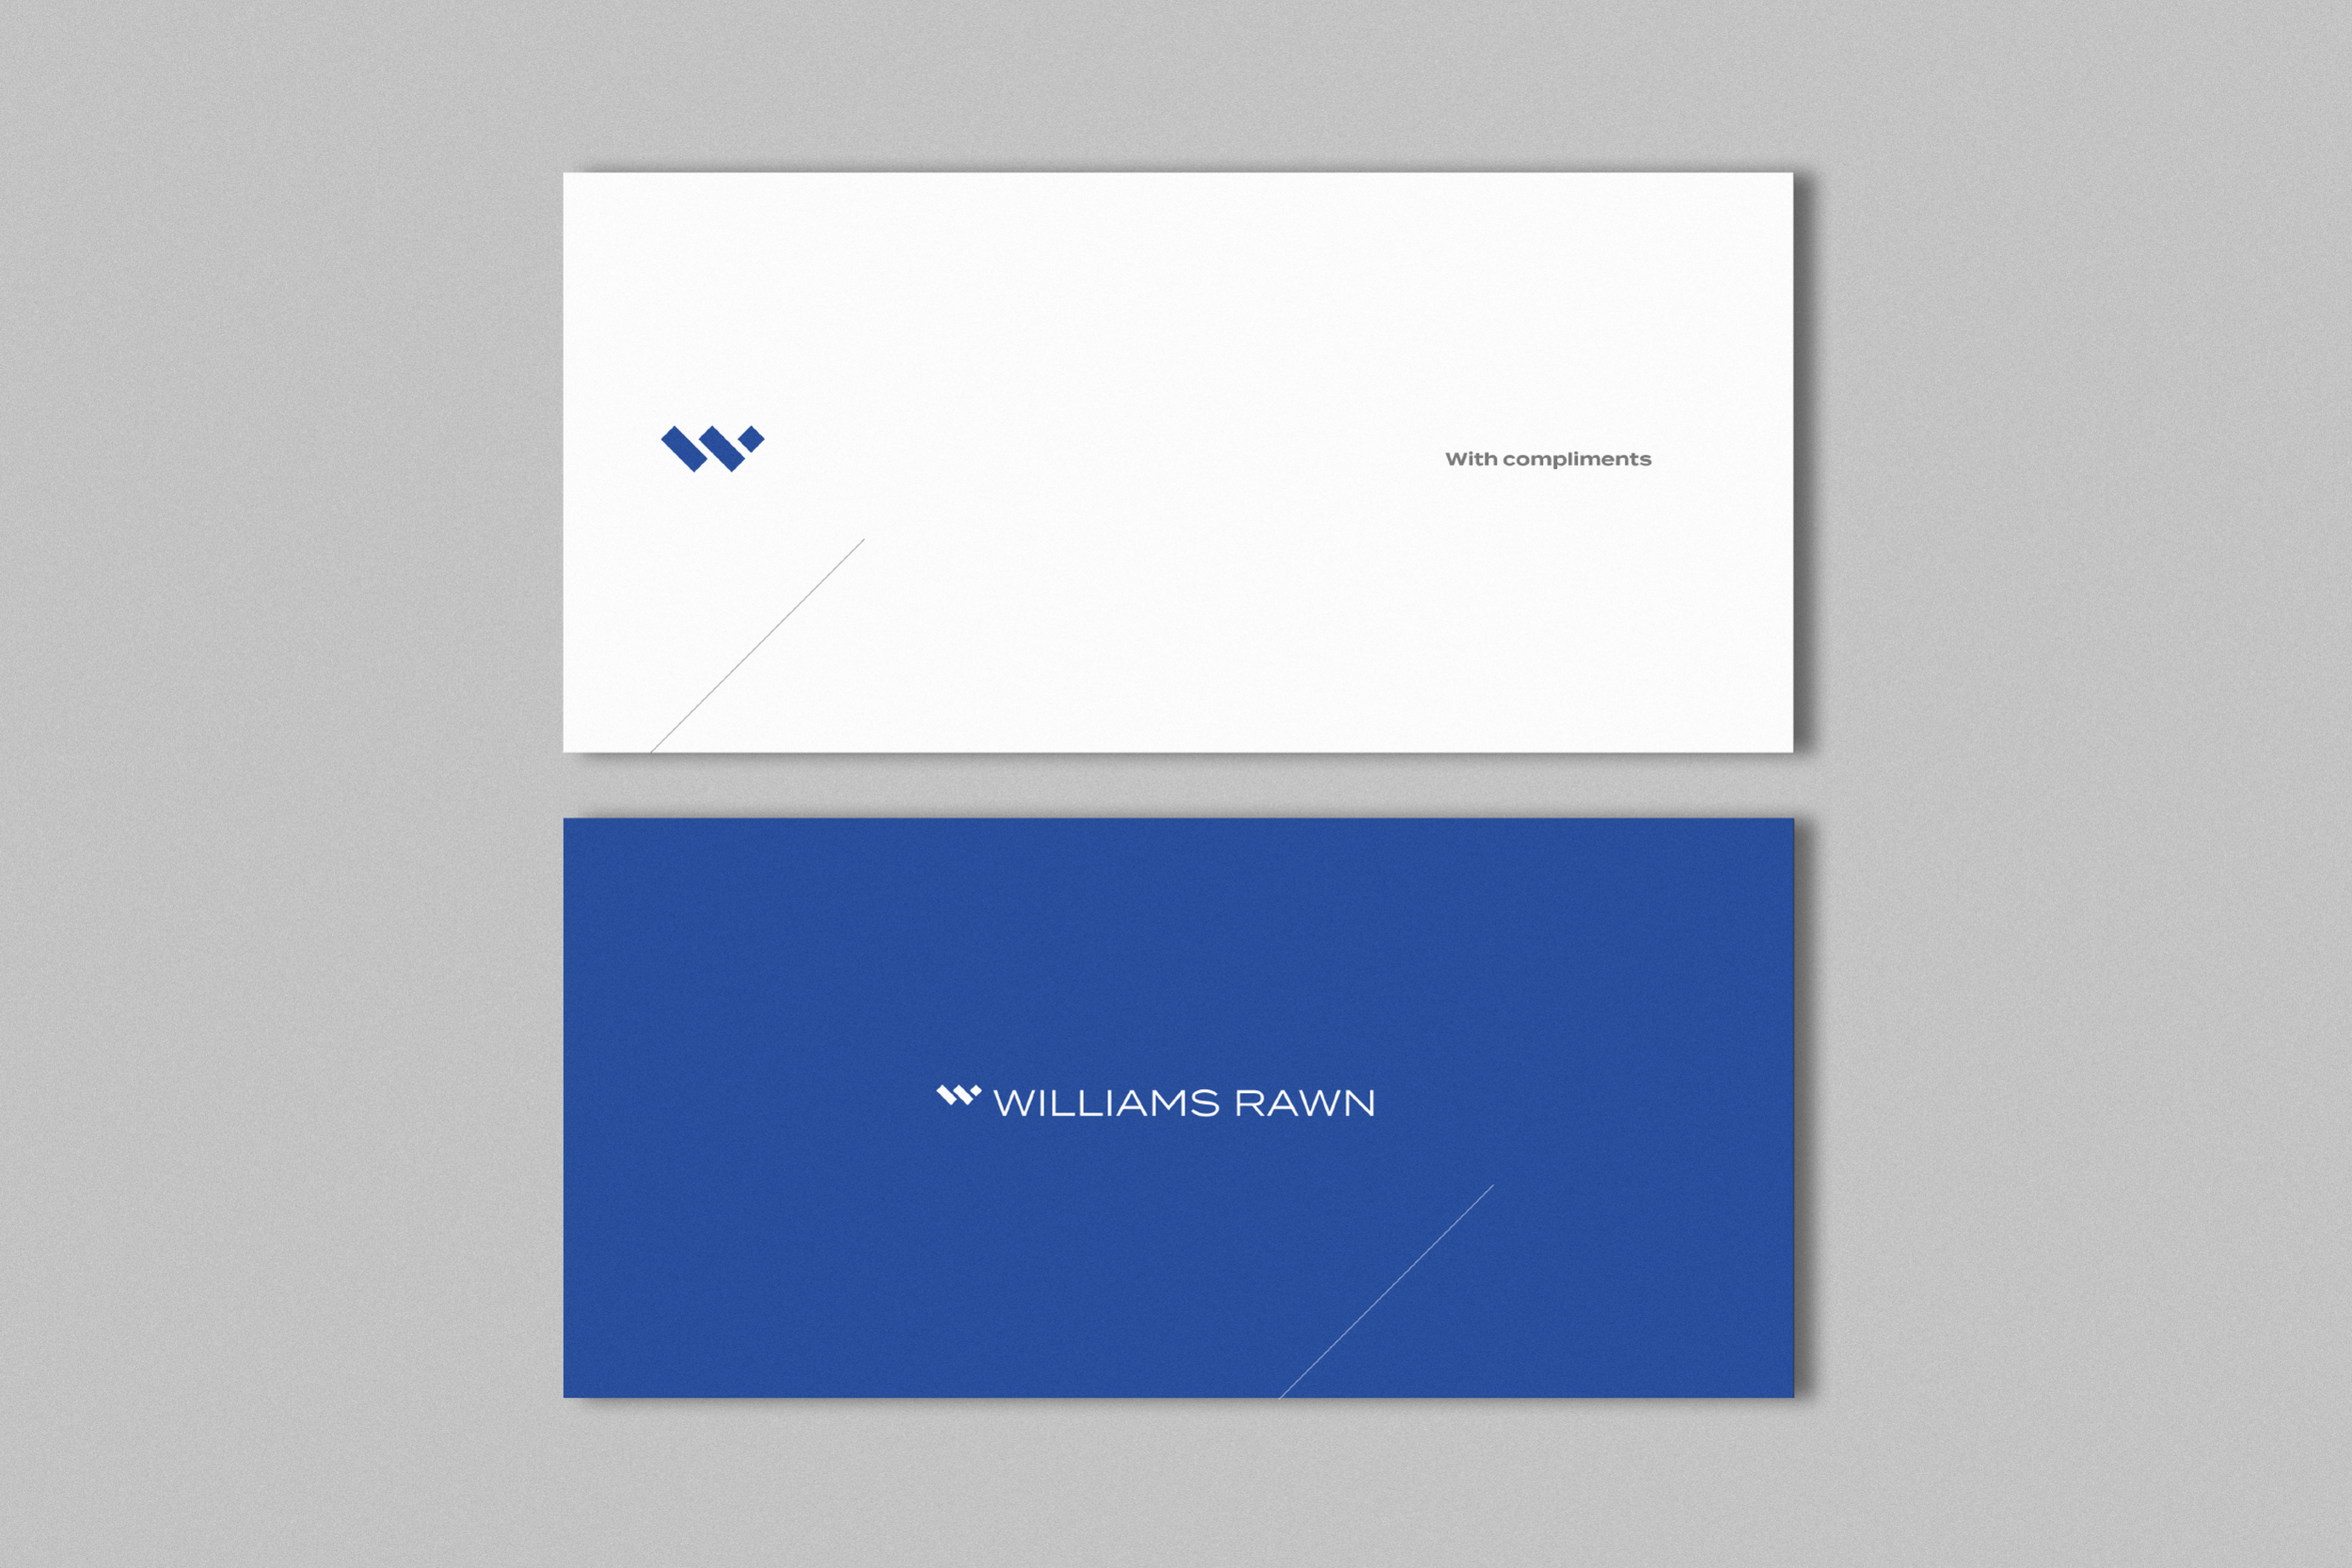 Williams Rawn Brand Delivery 2_Artboard 12-12.png